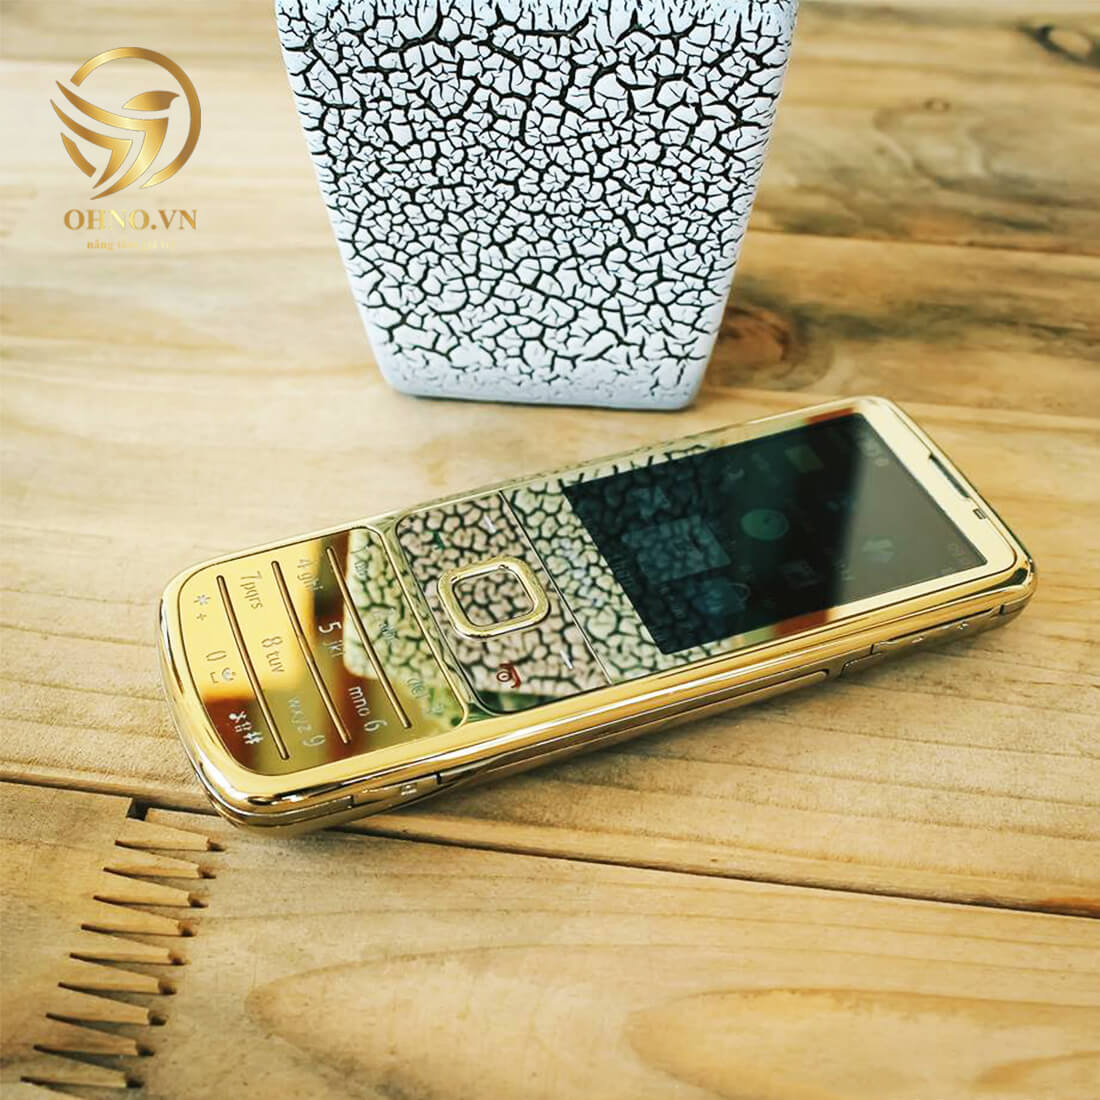 dien thoai nokia 6700 classic gold silver chinh hang main zin ohno.vn ohno viet nam